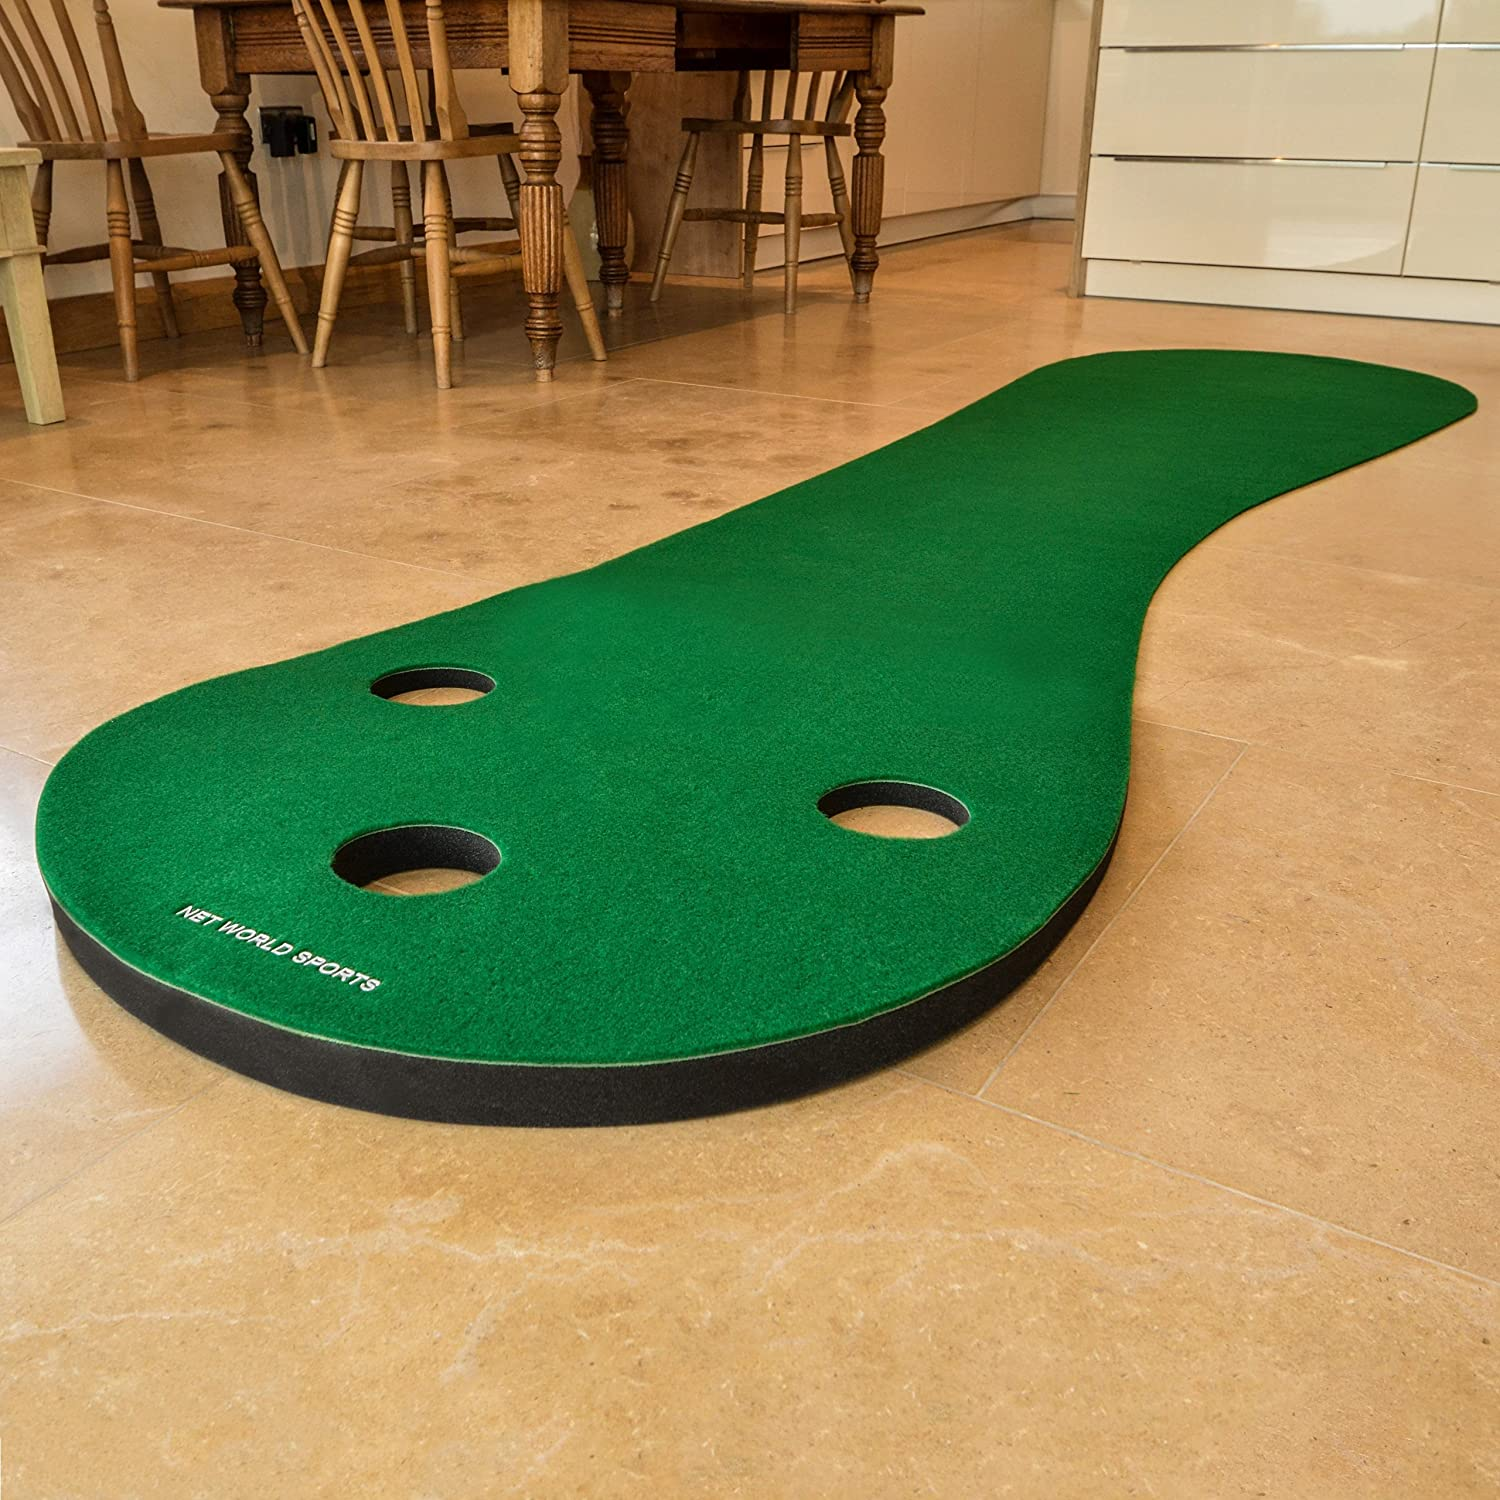 FORB Home Golf Putting Mat 10ft 12ft Long – Improve Your Putting Stroke in Your Own Home Net World Sports